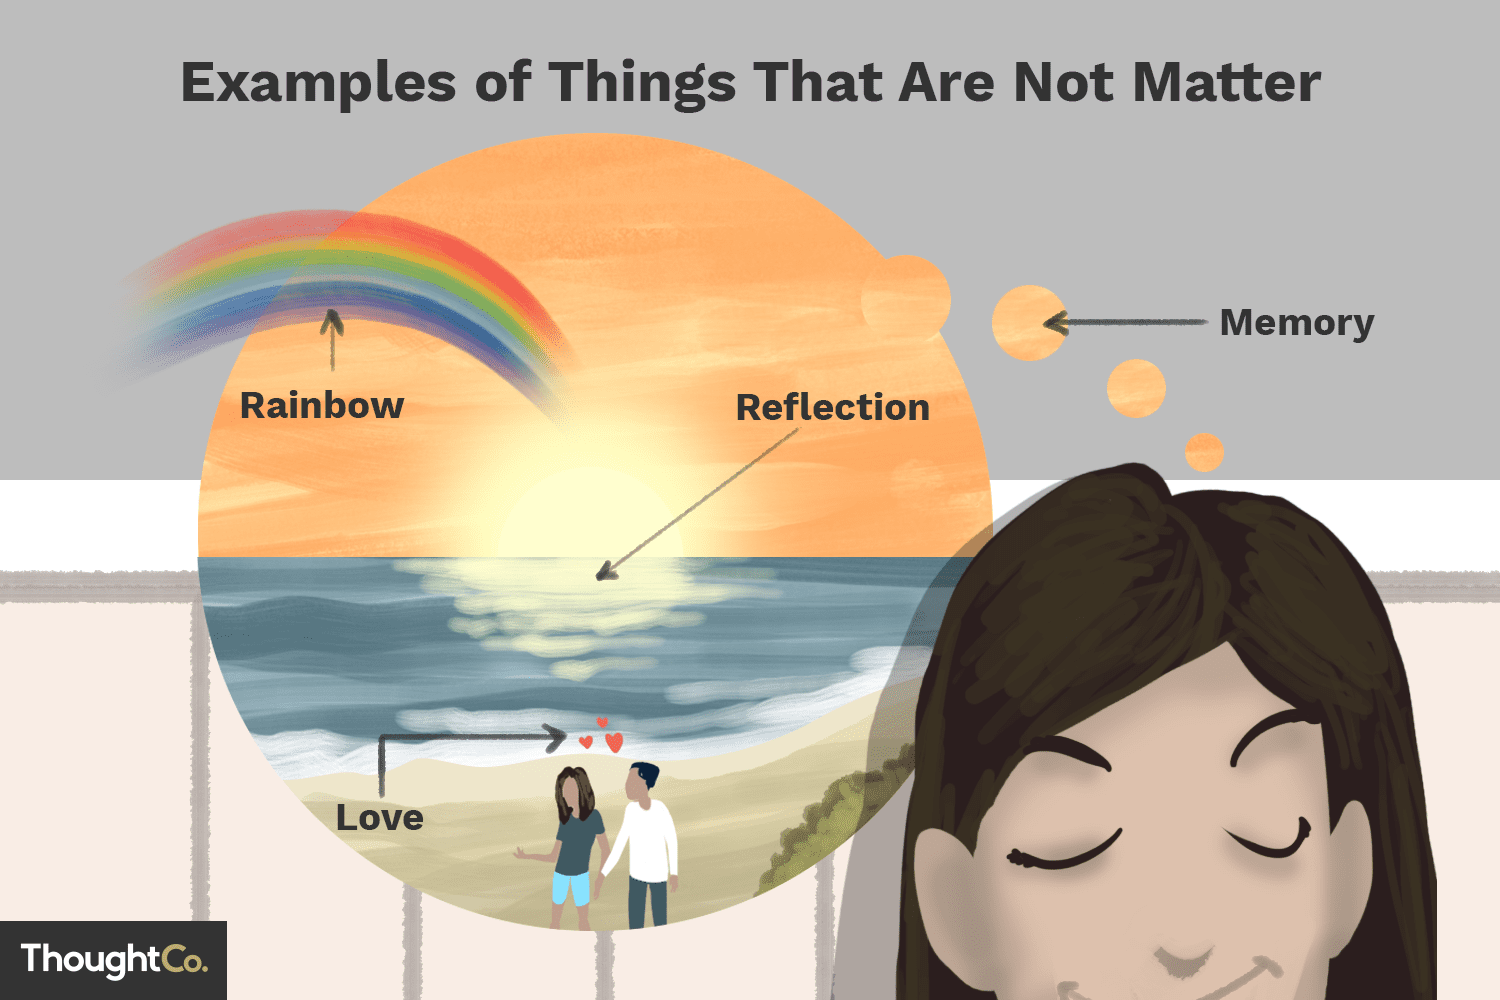 What Are 10 Examples Of Things That Are Not Matter